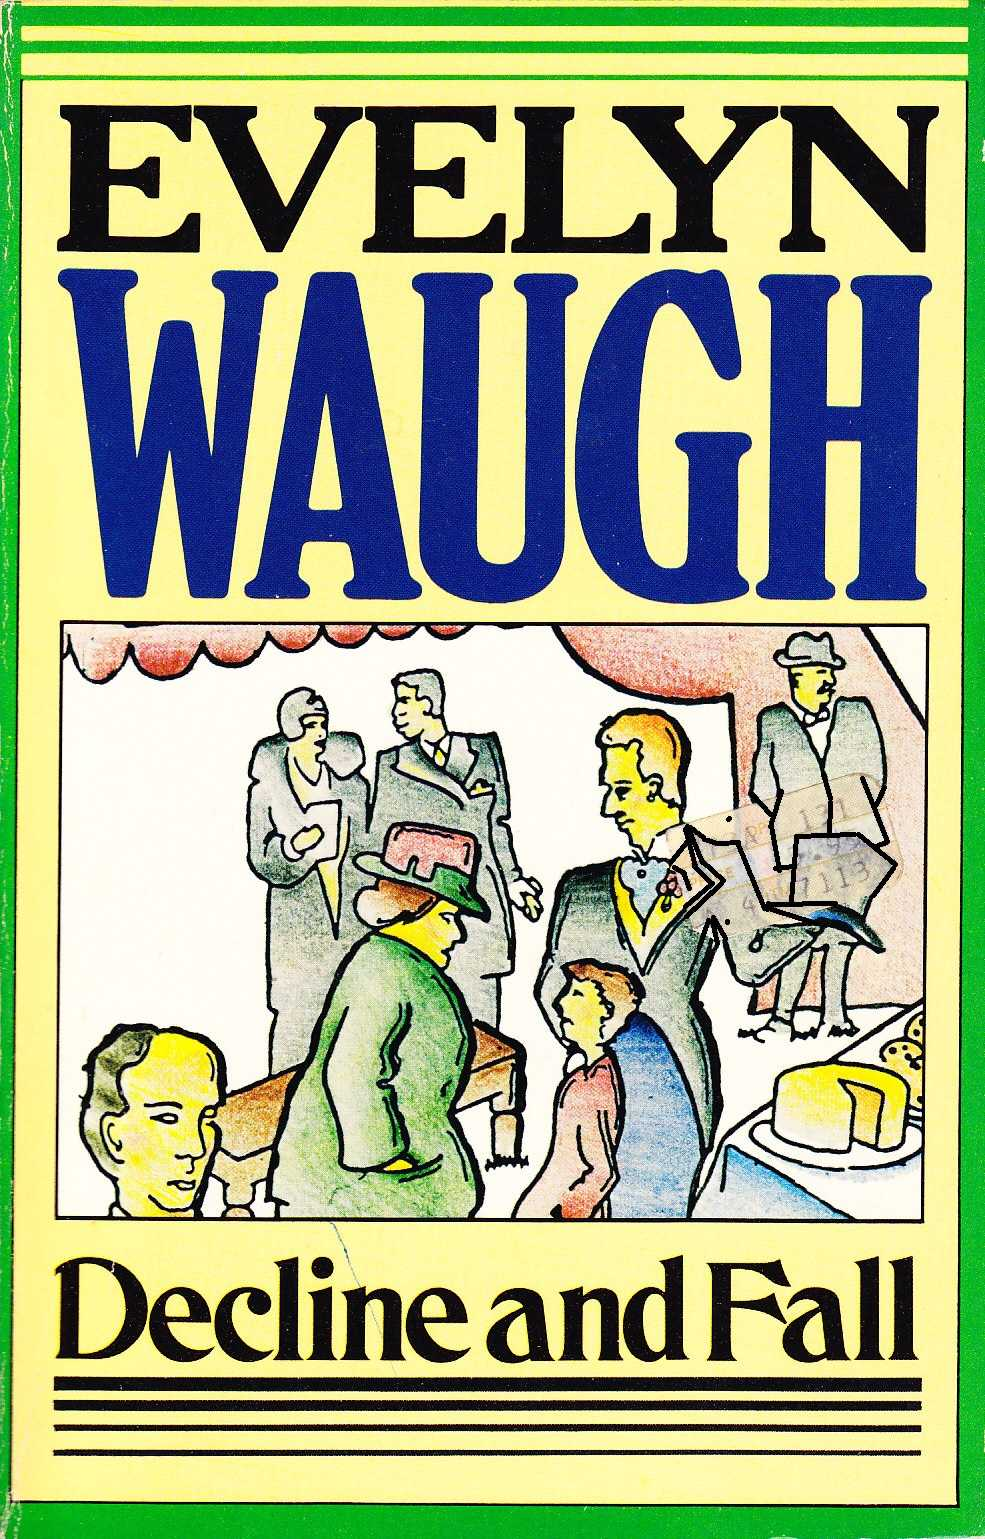 evelyn waughs decline and fall Complete summary of evelyn waugh's decline and fall enotes plot summaries cover all the significant action of decline and fall he confides to paul that he is a crook who took the post in order to kidnap little lord tangent, but that he reformed after falling in love with diana.